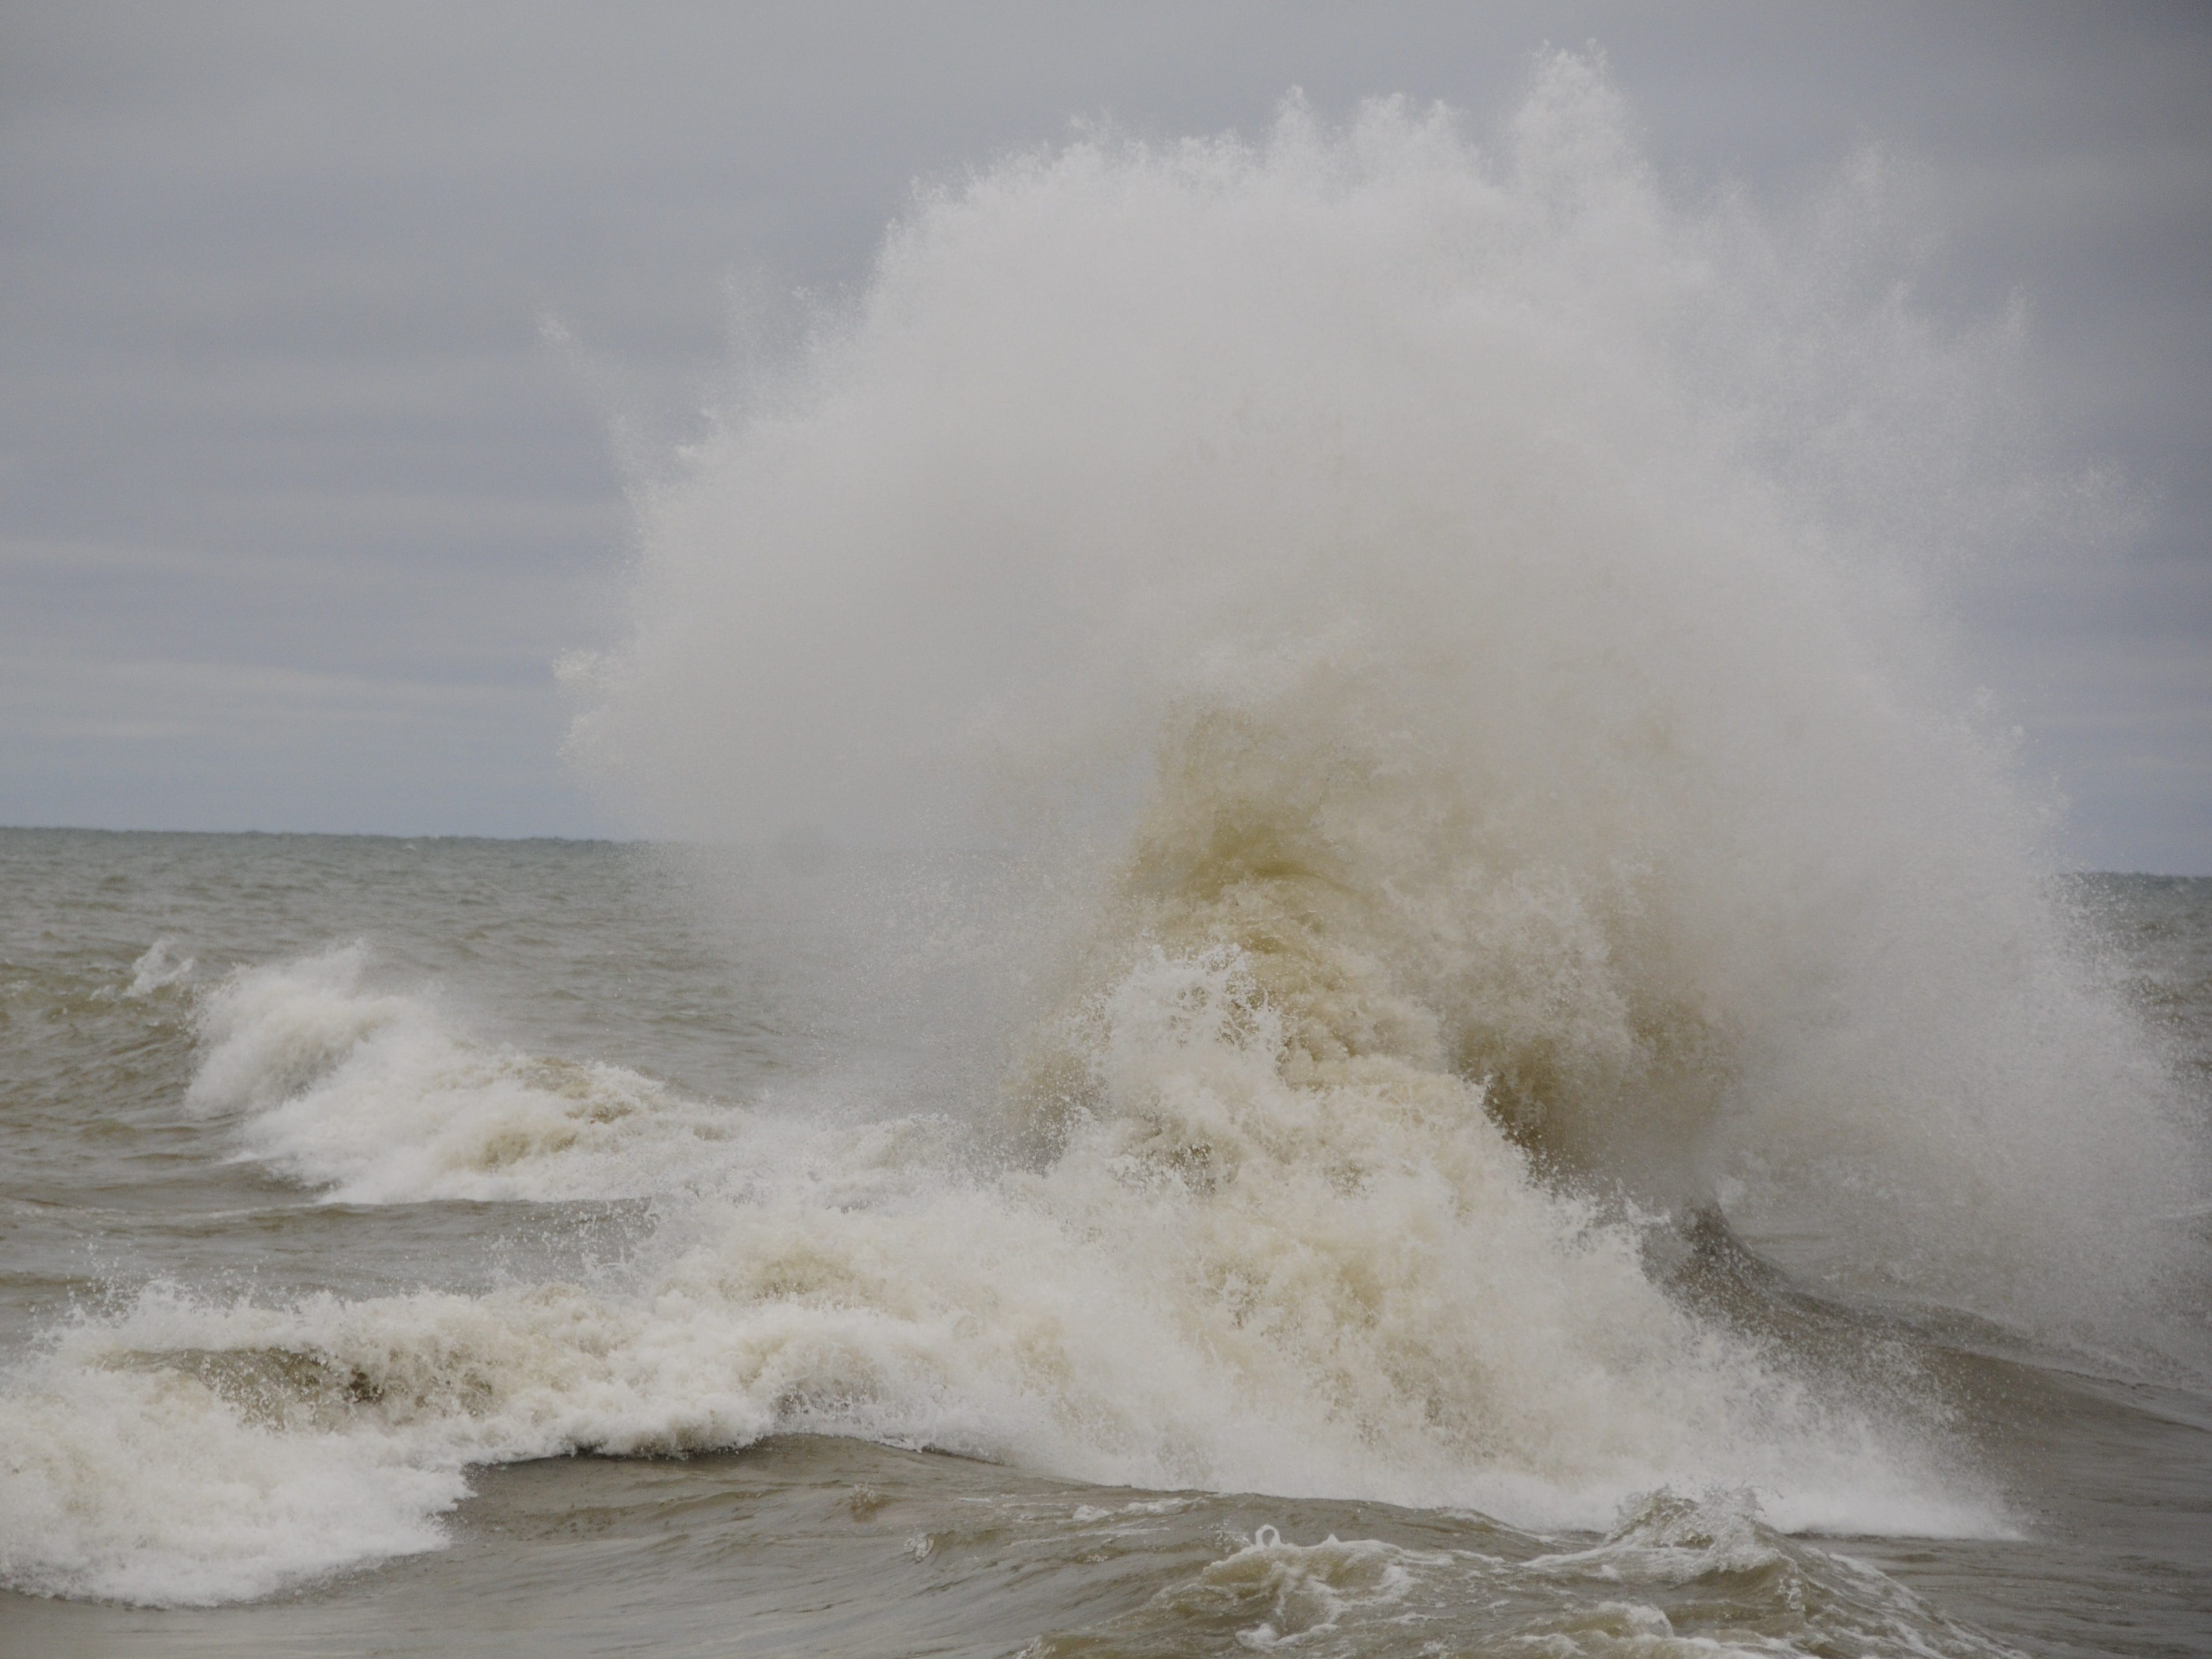 Waves slam into each other in Lake Huron near Port Sanilac on New Year's Day 2019.